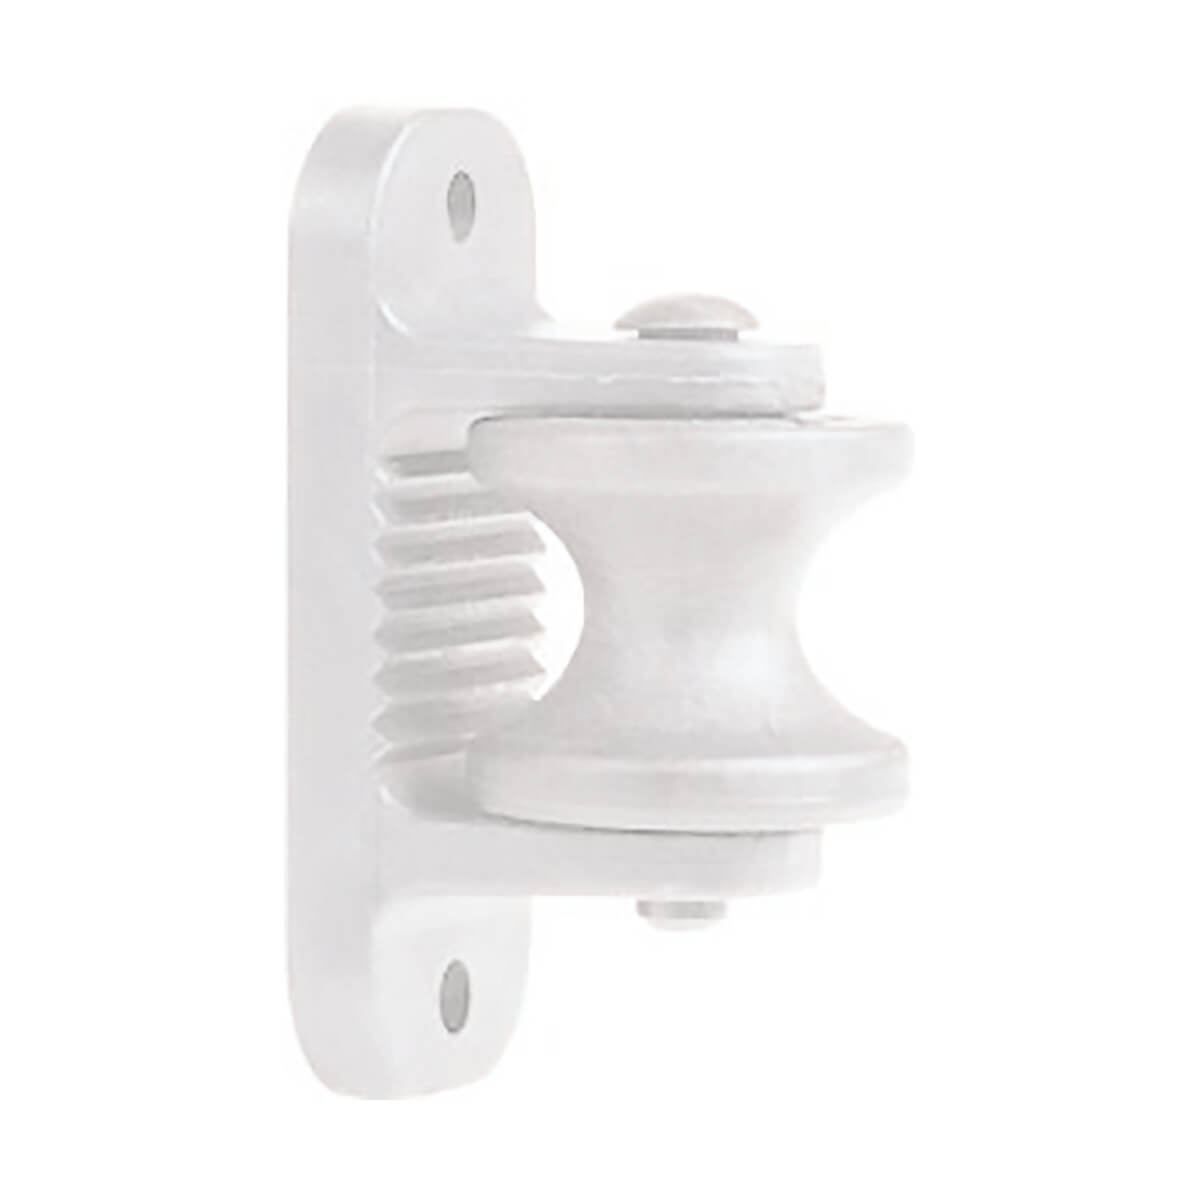 Power Wizard White Roller Insulators